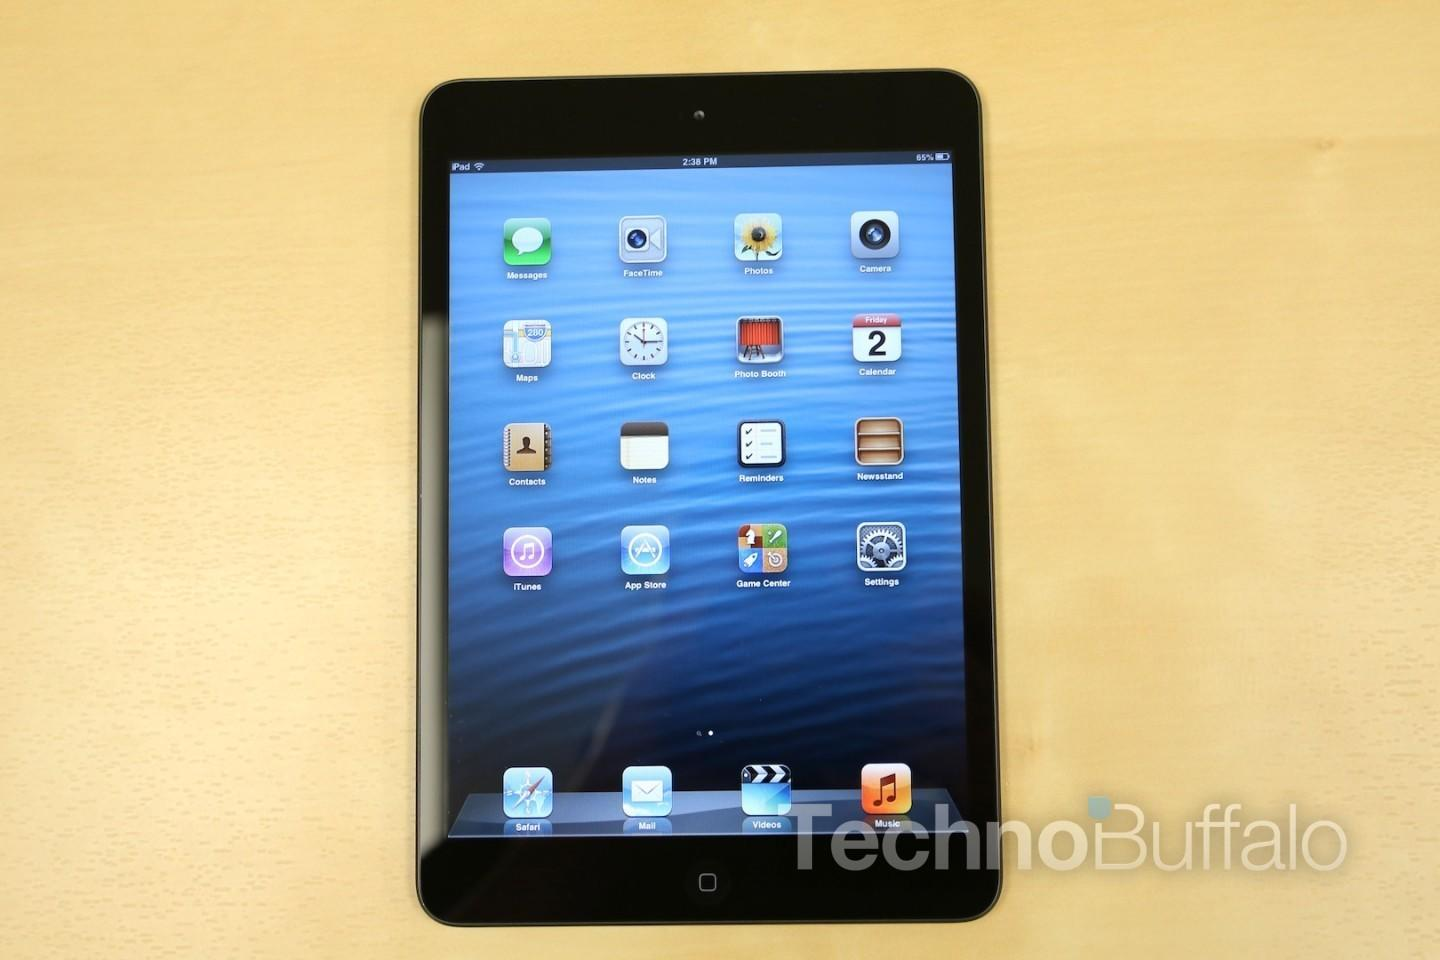 iPad mini review: The Tiny Tablet You've Been Waiting For